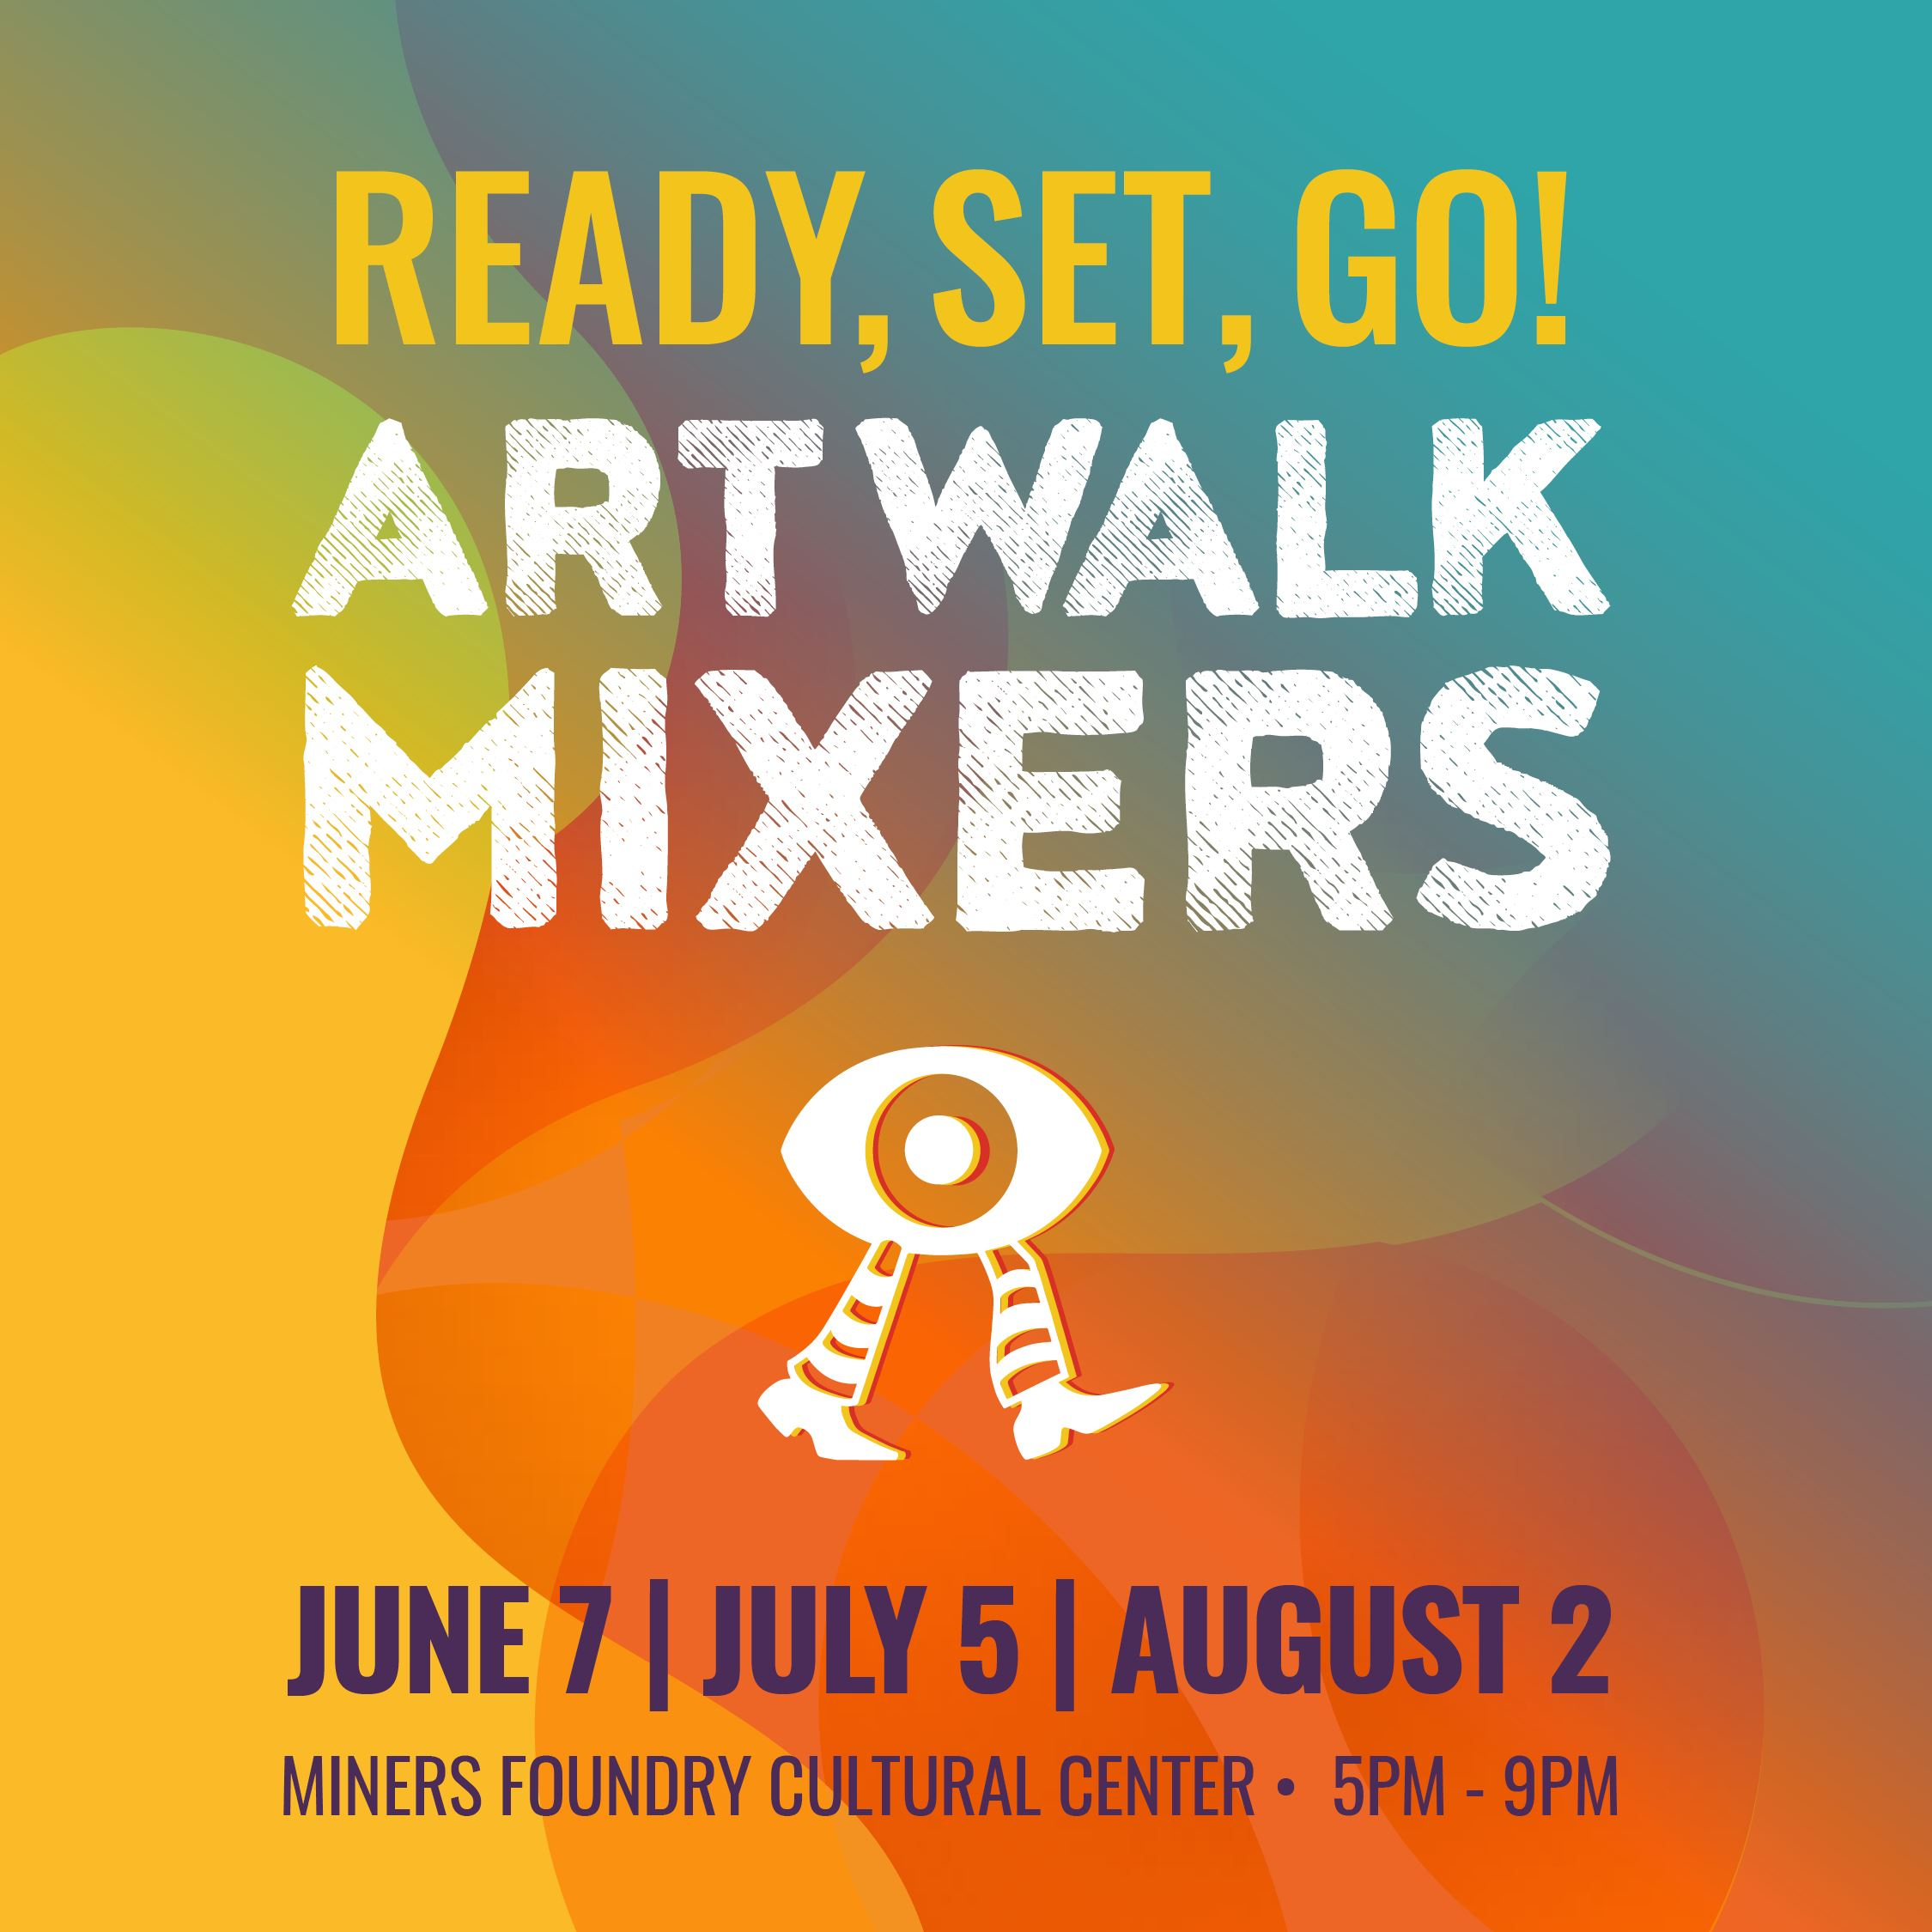 Nevada City First Friday Art Walk Mixer Graphic